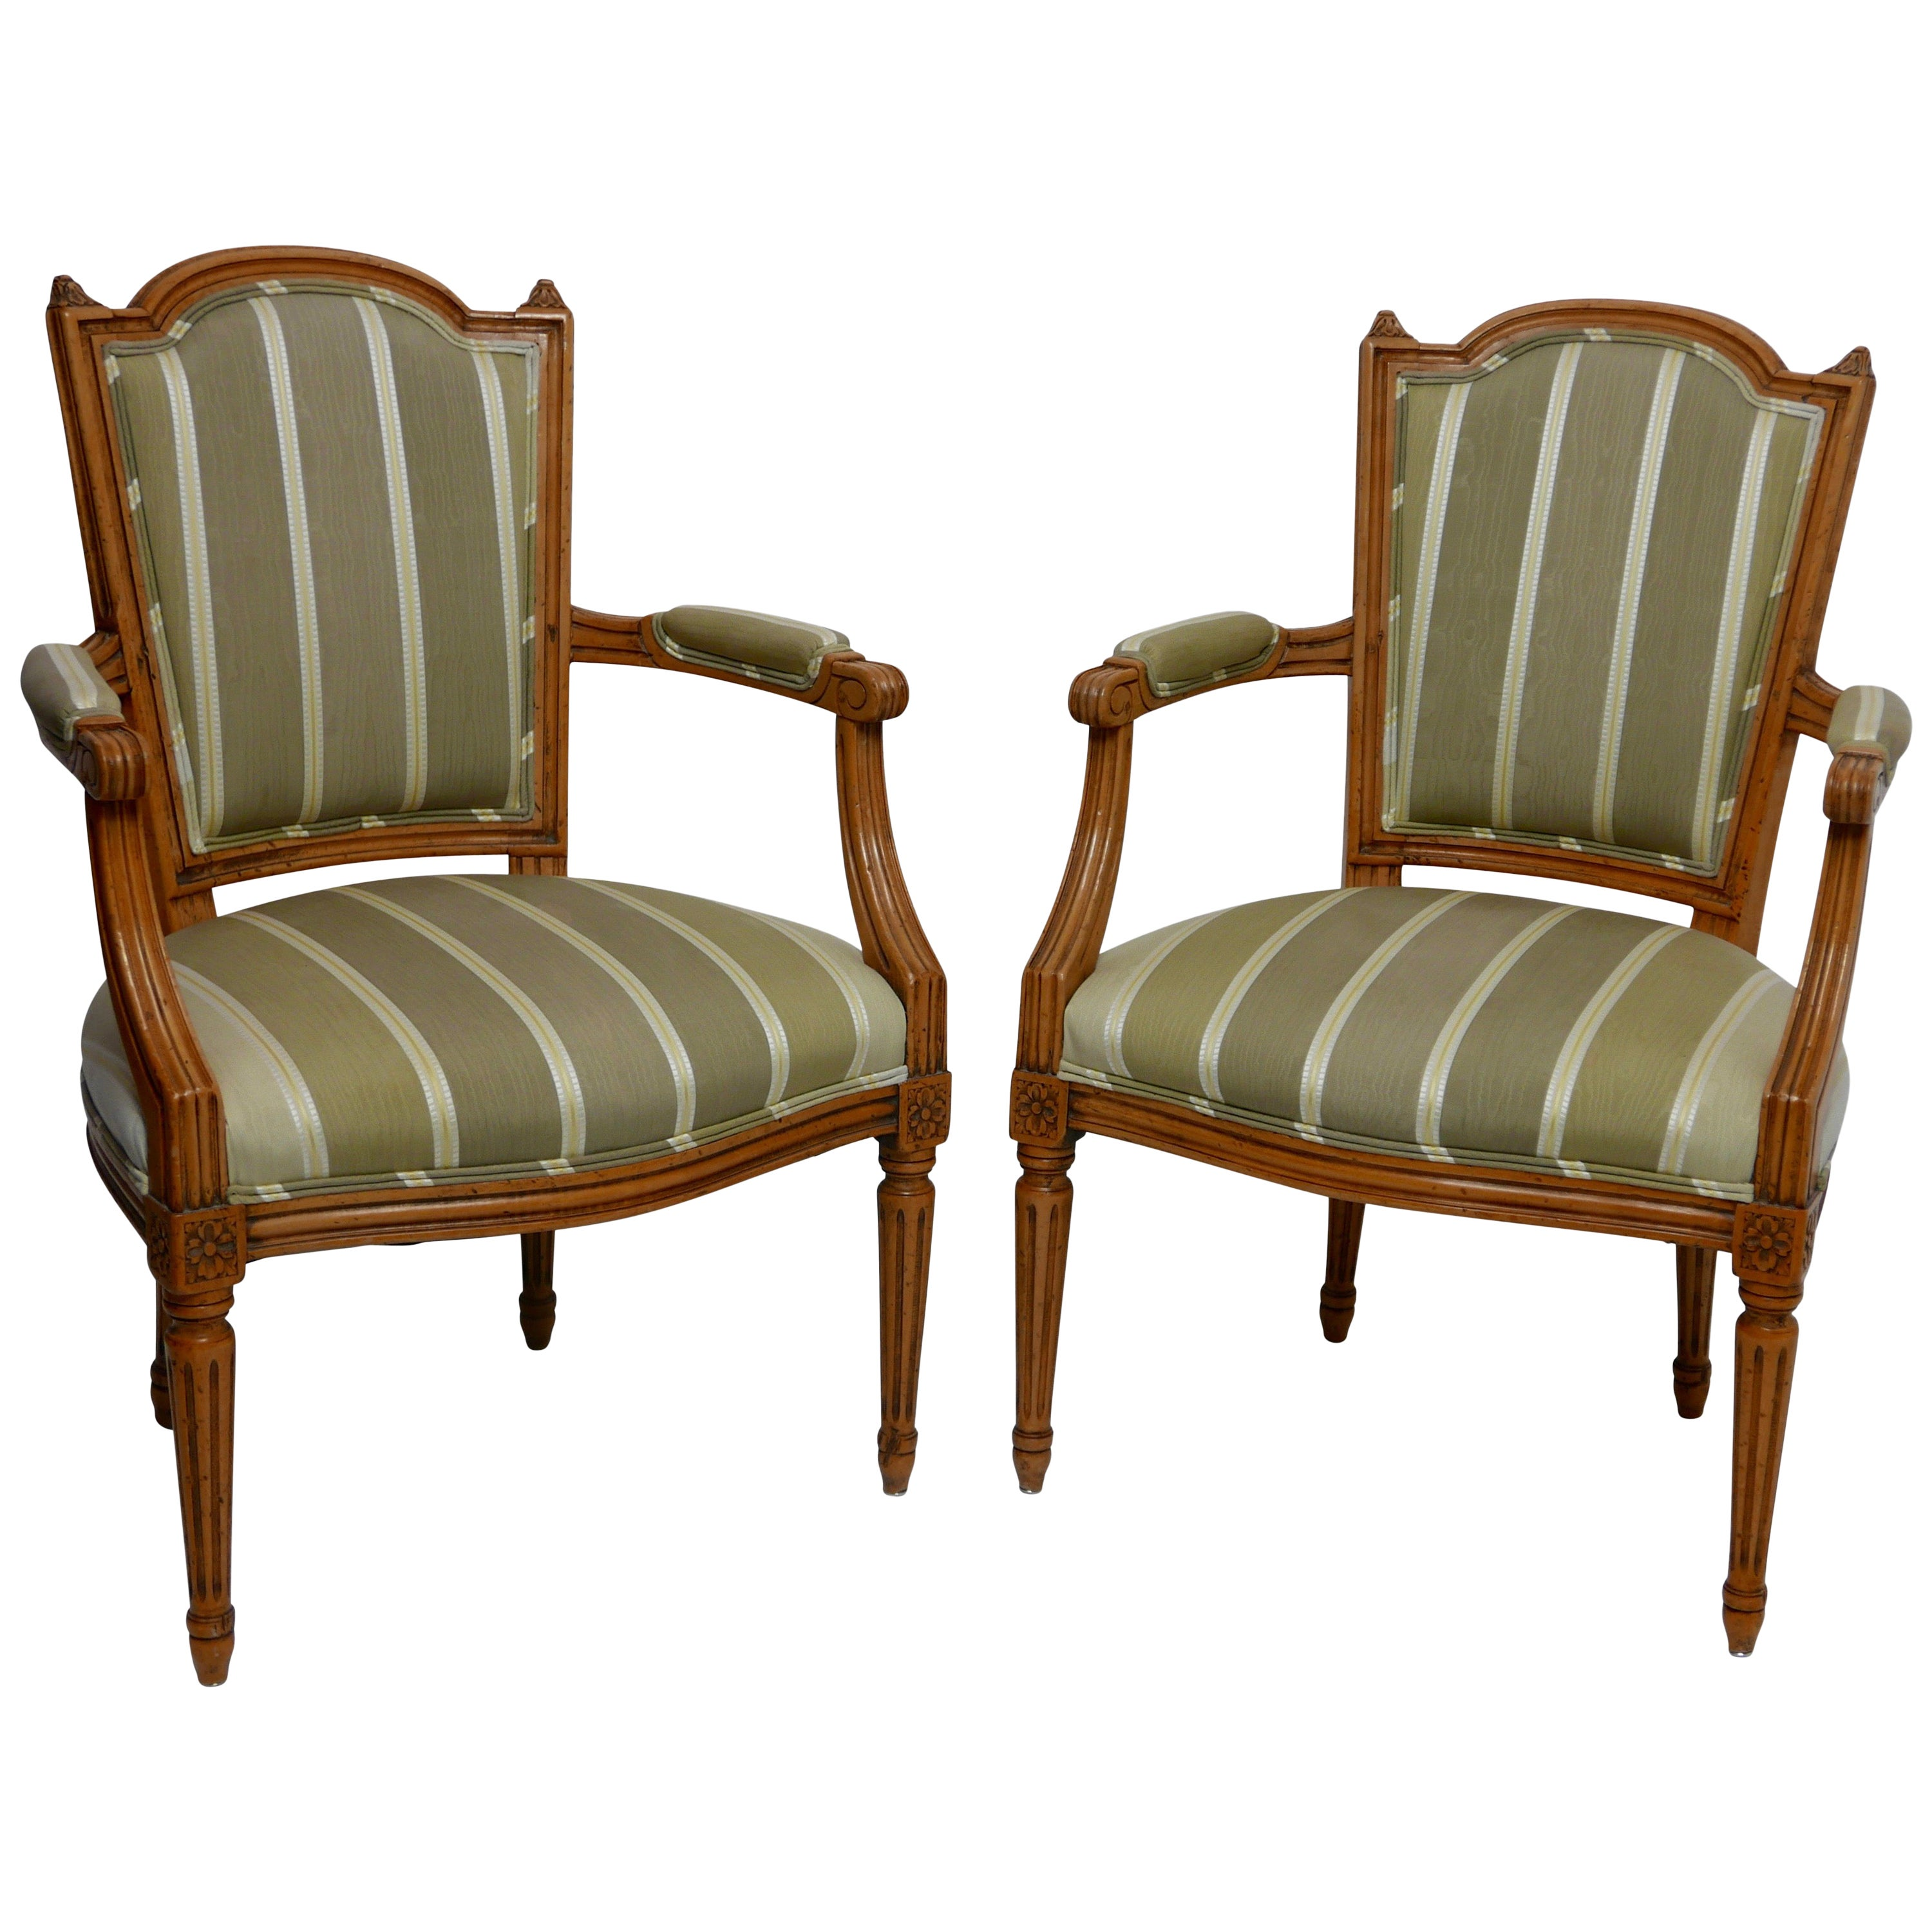 Pair of Louis XVI Fauteuils Armchairs with Carved Frames, French, circa 1800